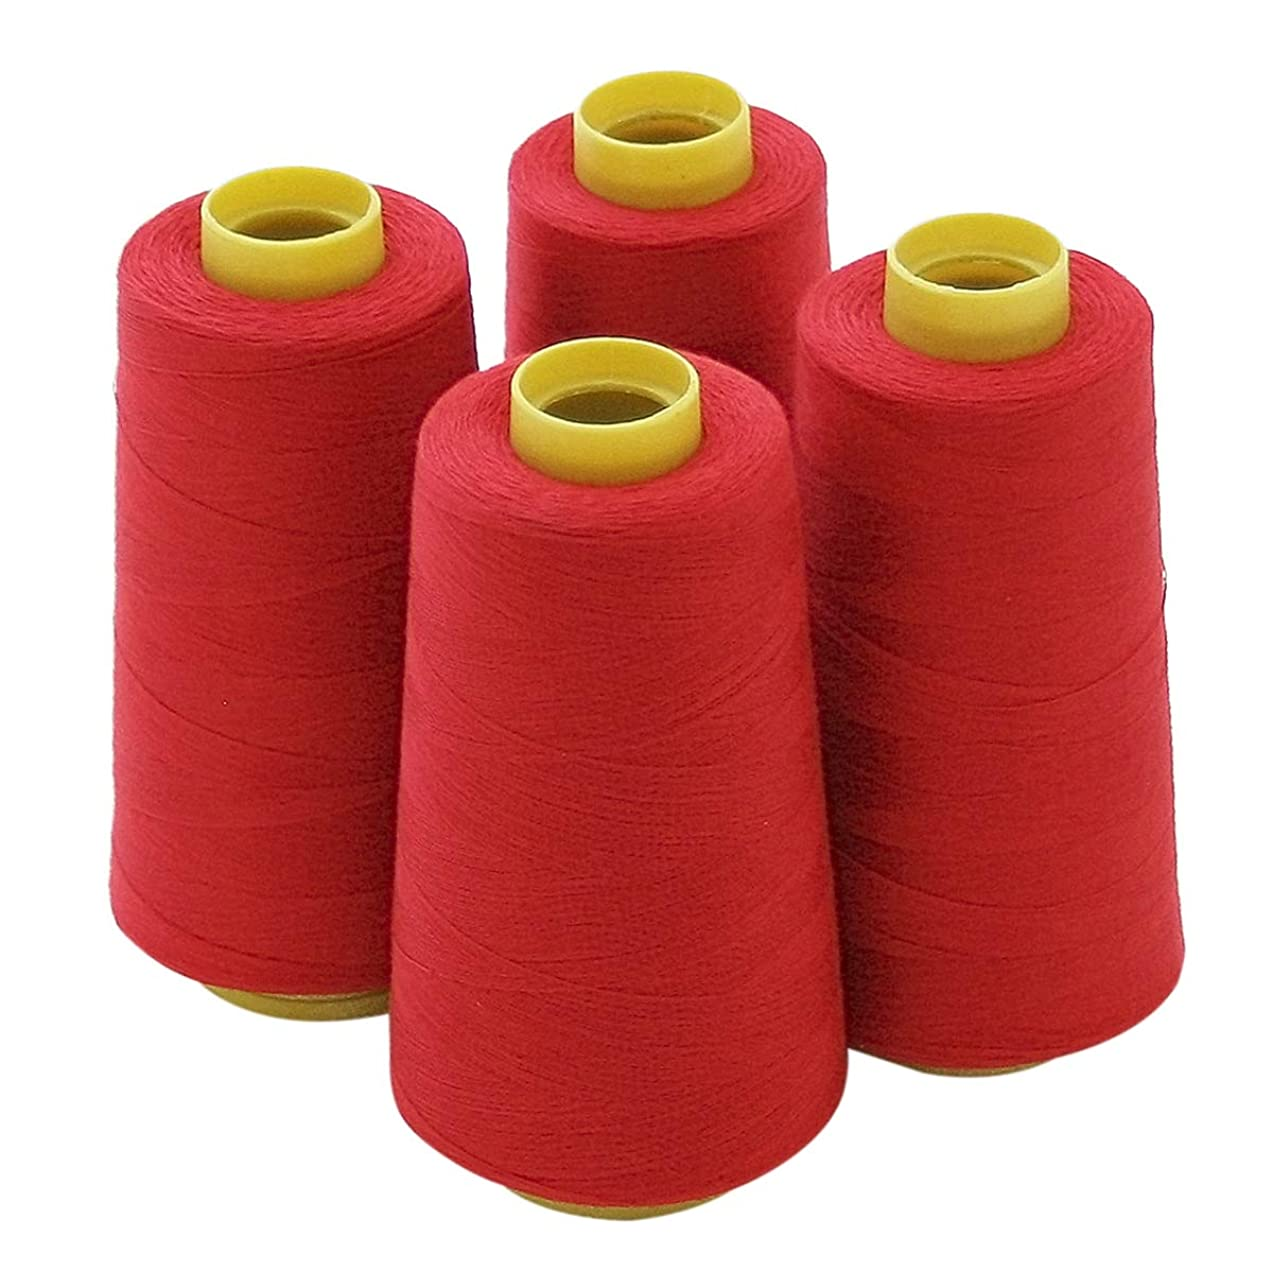 4 Large Cones (3000 Yards Each) of Polyester Threads for Sewing Quilting Serger RED Color From Threadnanny